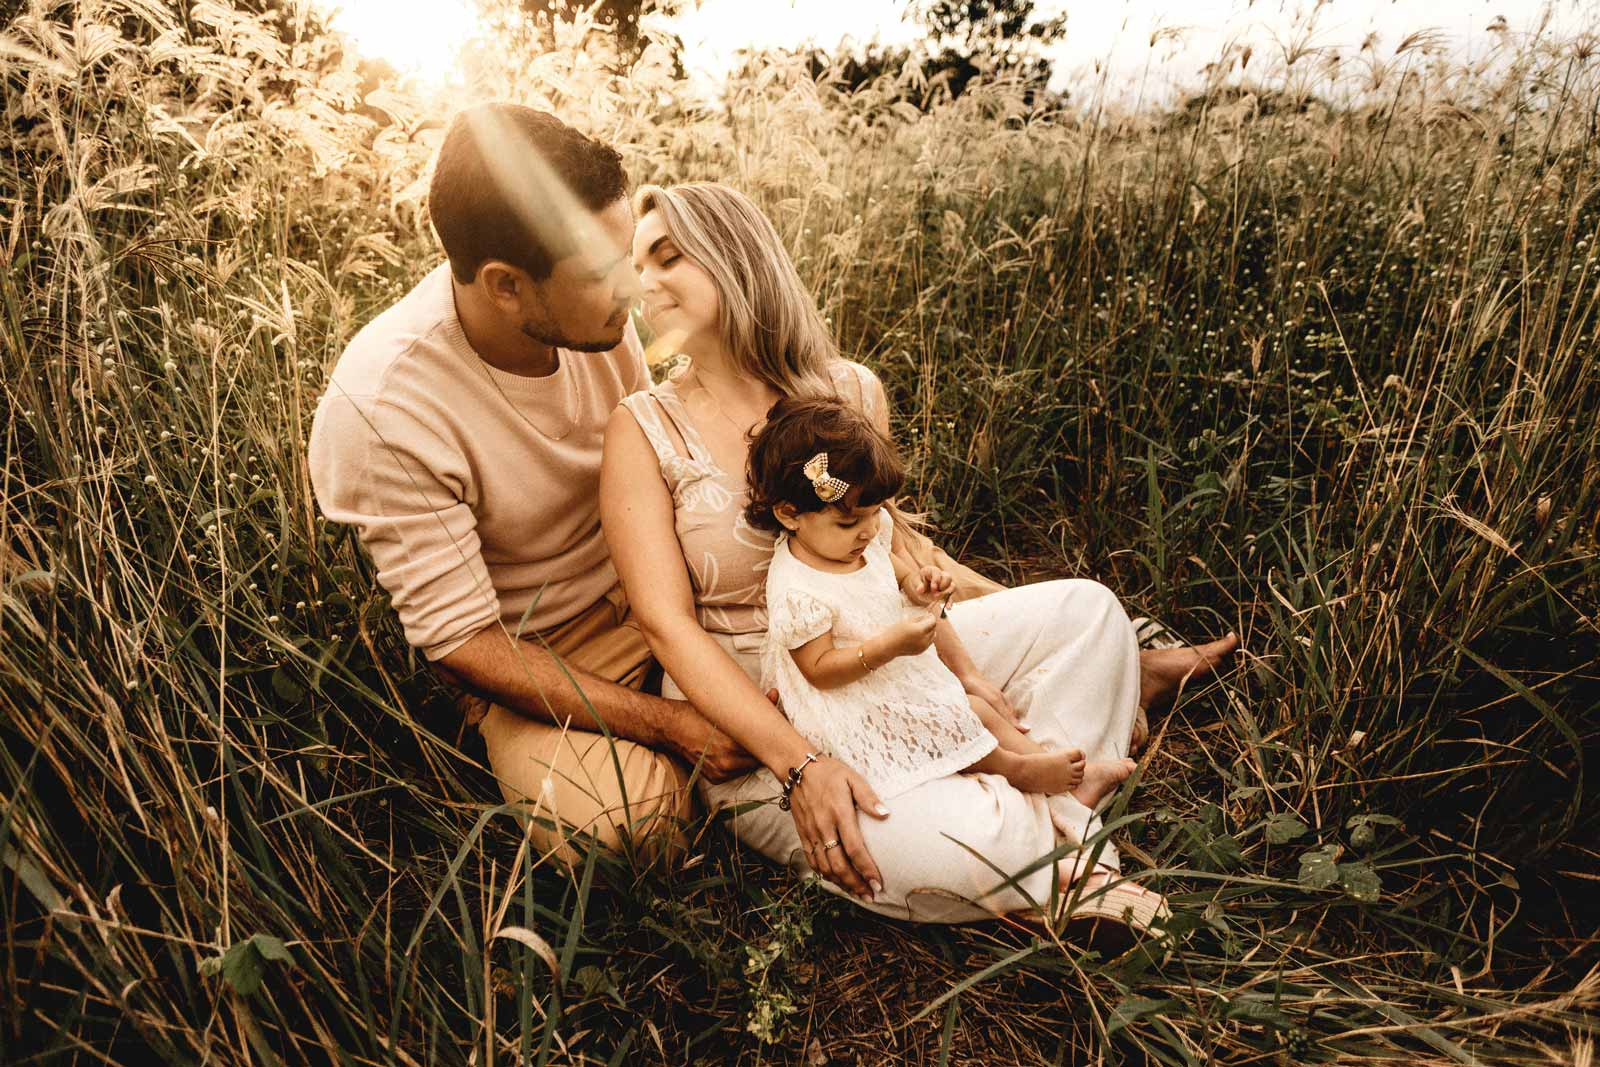 Family photo of a husband and wife with their baby in a field